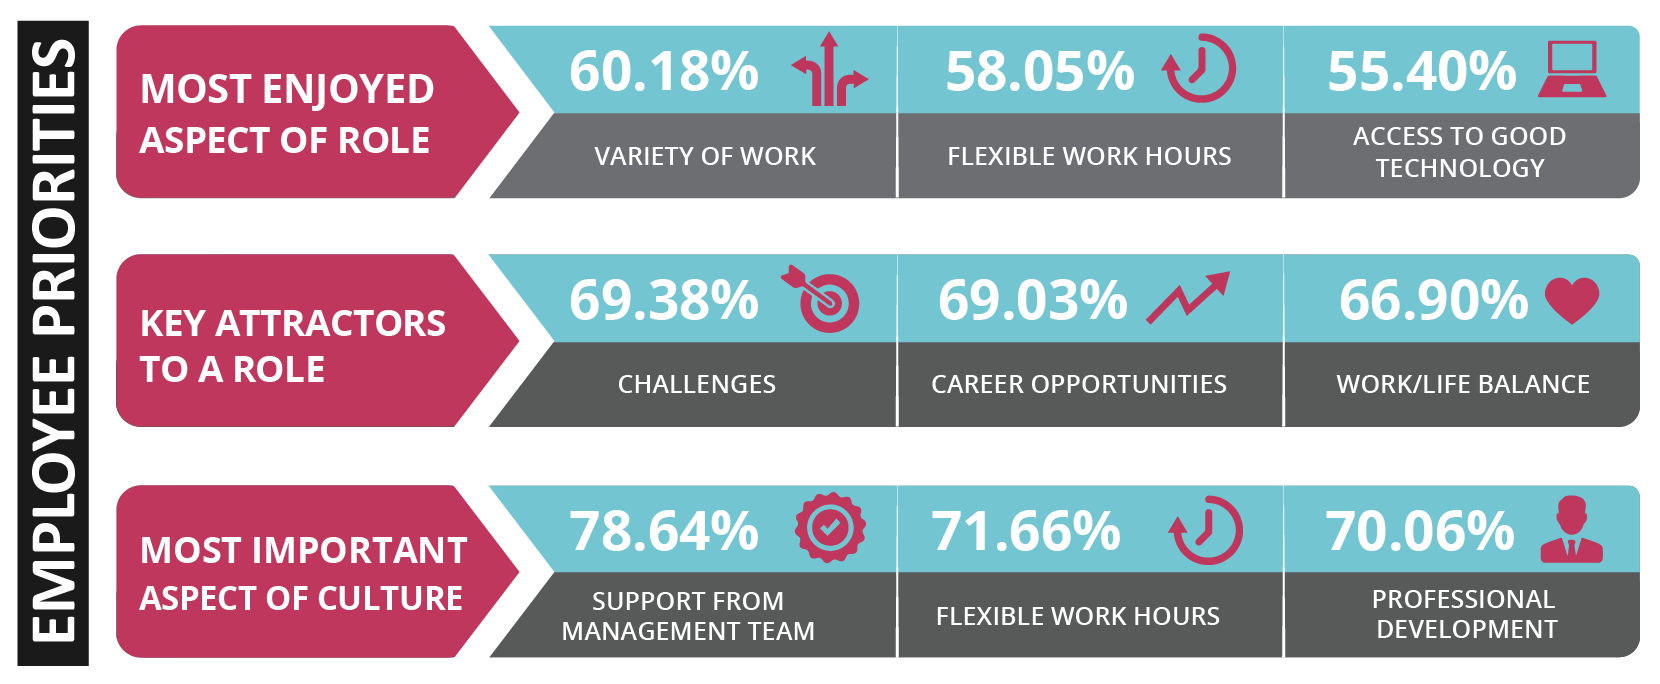 Sourced Report September 2016 | Employee Priorities